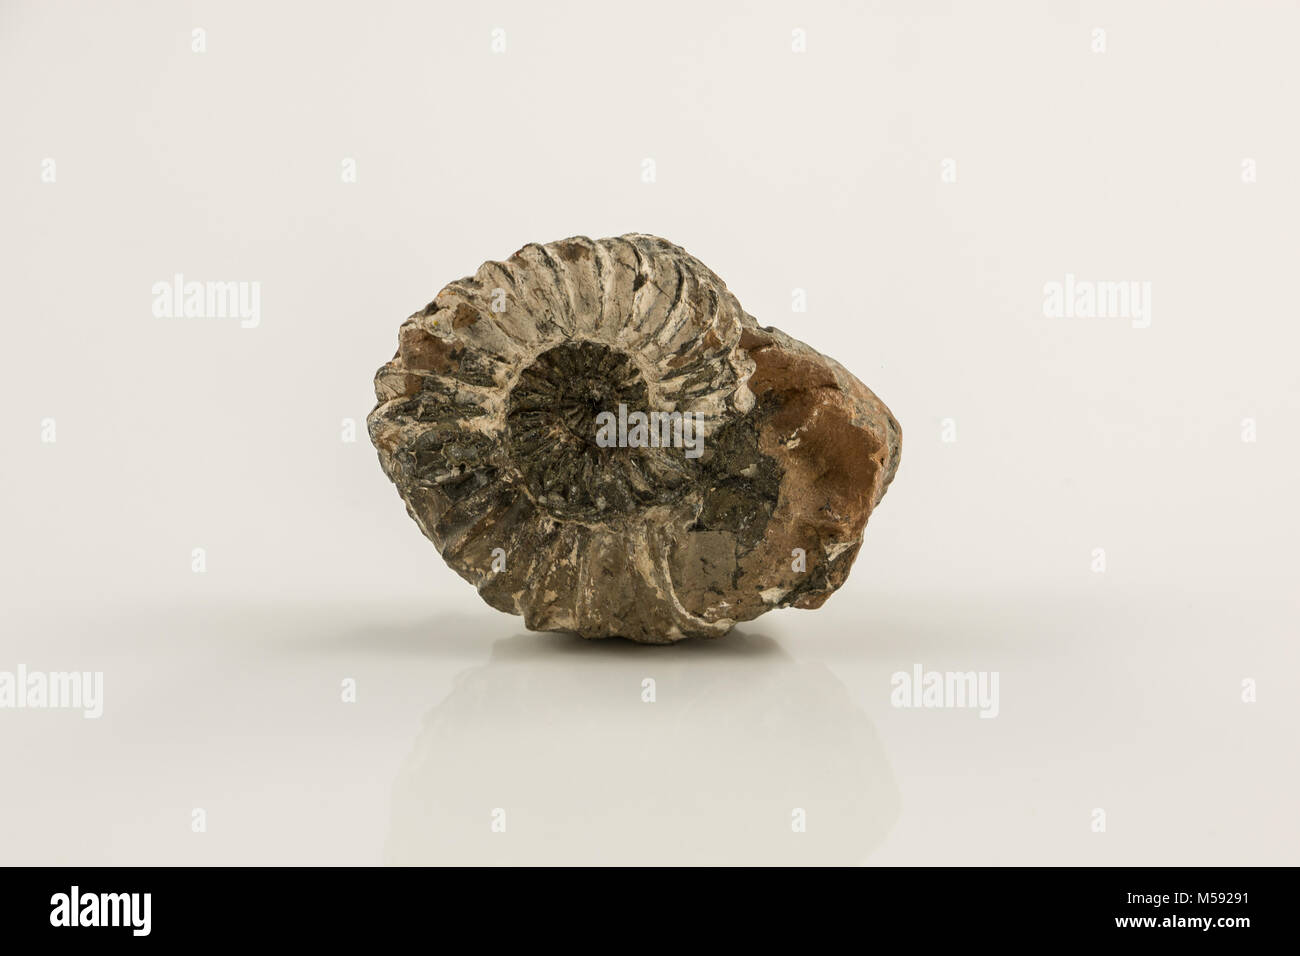 Old fossil snail and white background - Stock Image